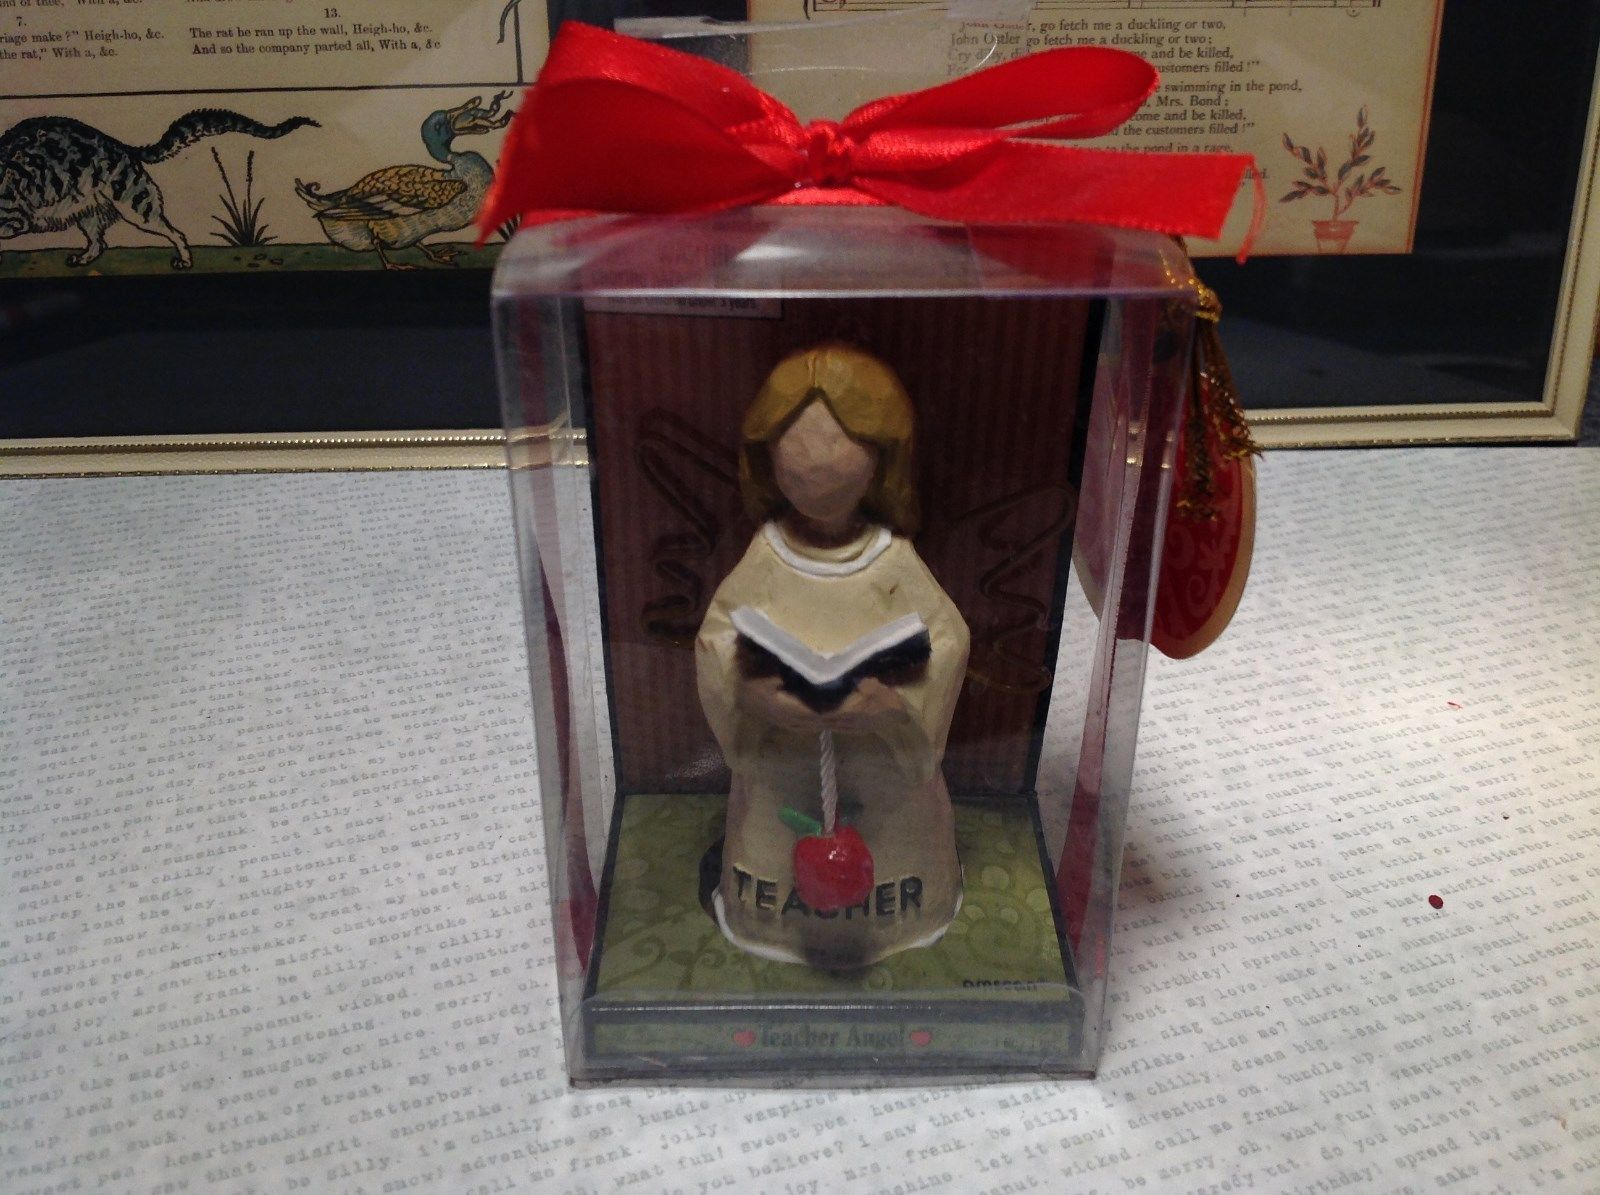 New Teacher Angel Resin with Book and Apple in Gift Box New with Tags Attached